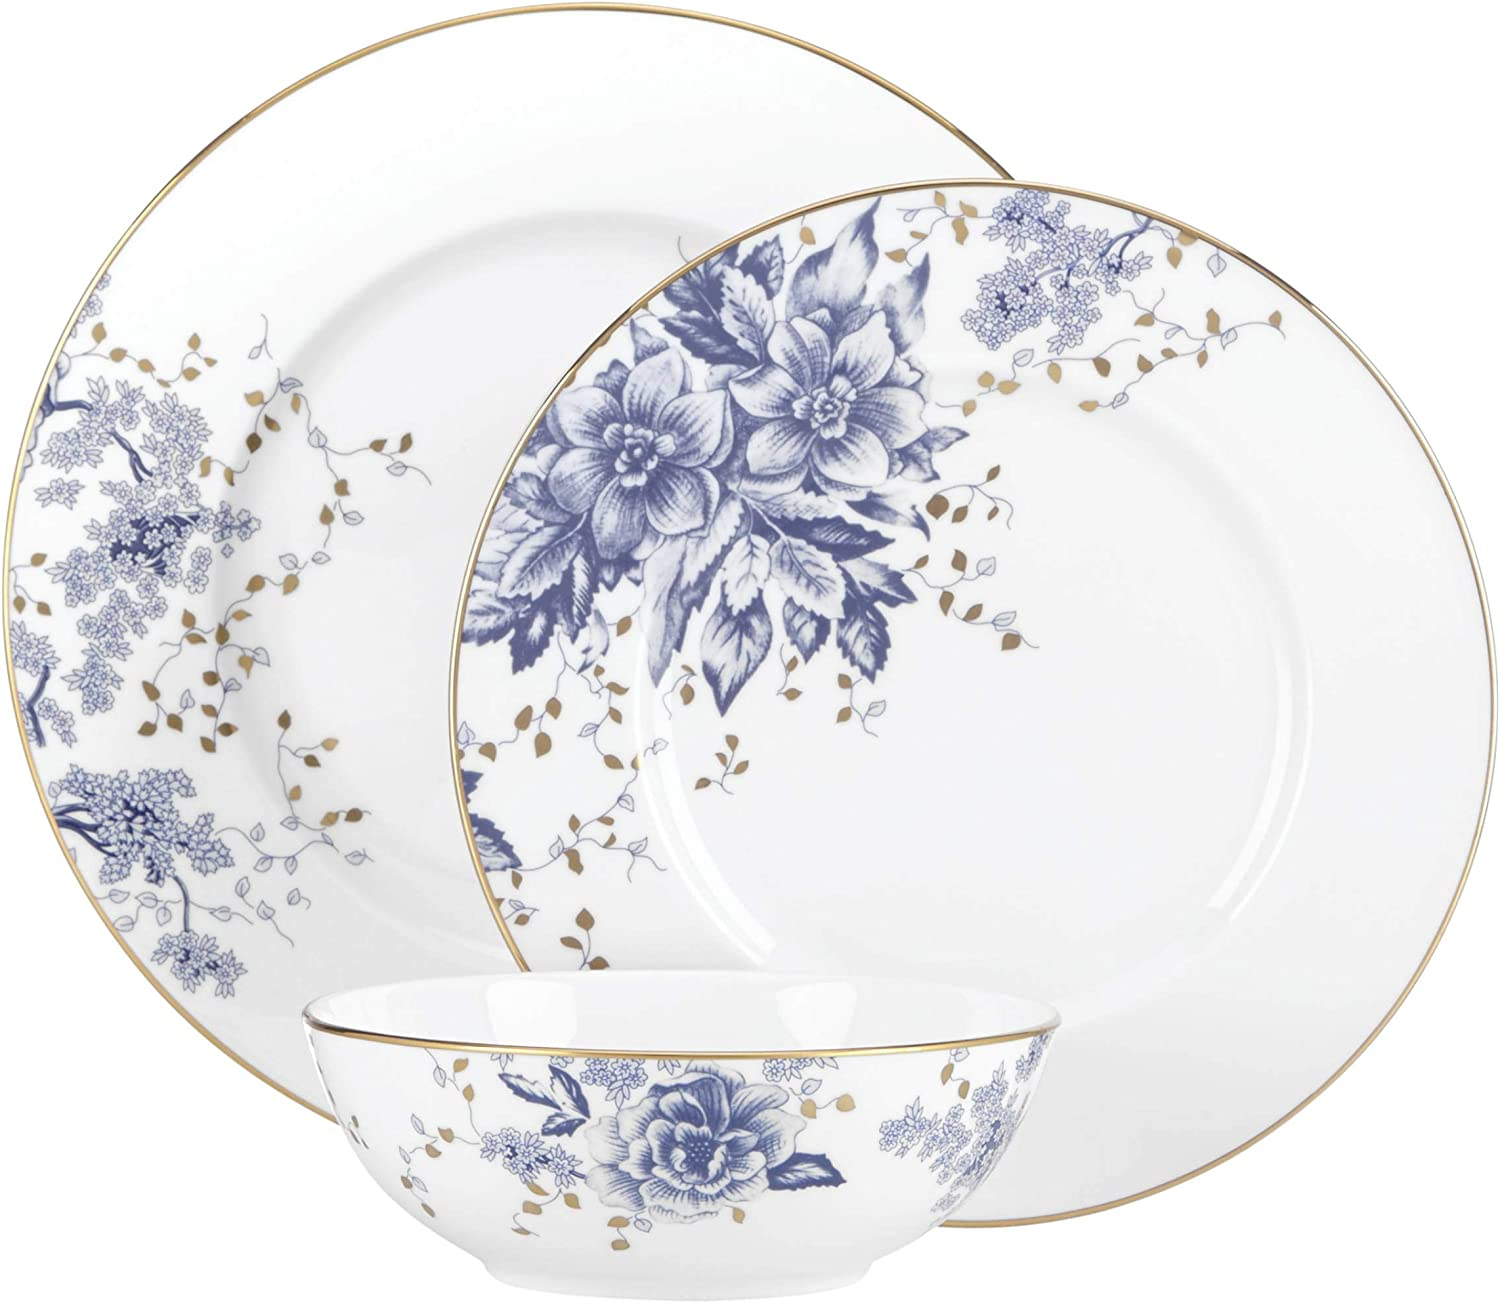 Lenox Garden Grove 3-piece Place Setting, 3.80 LB, Blue